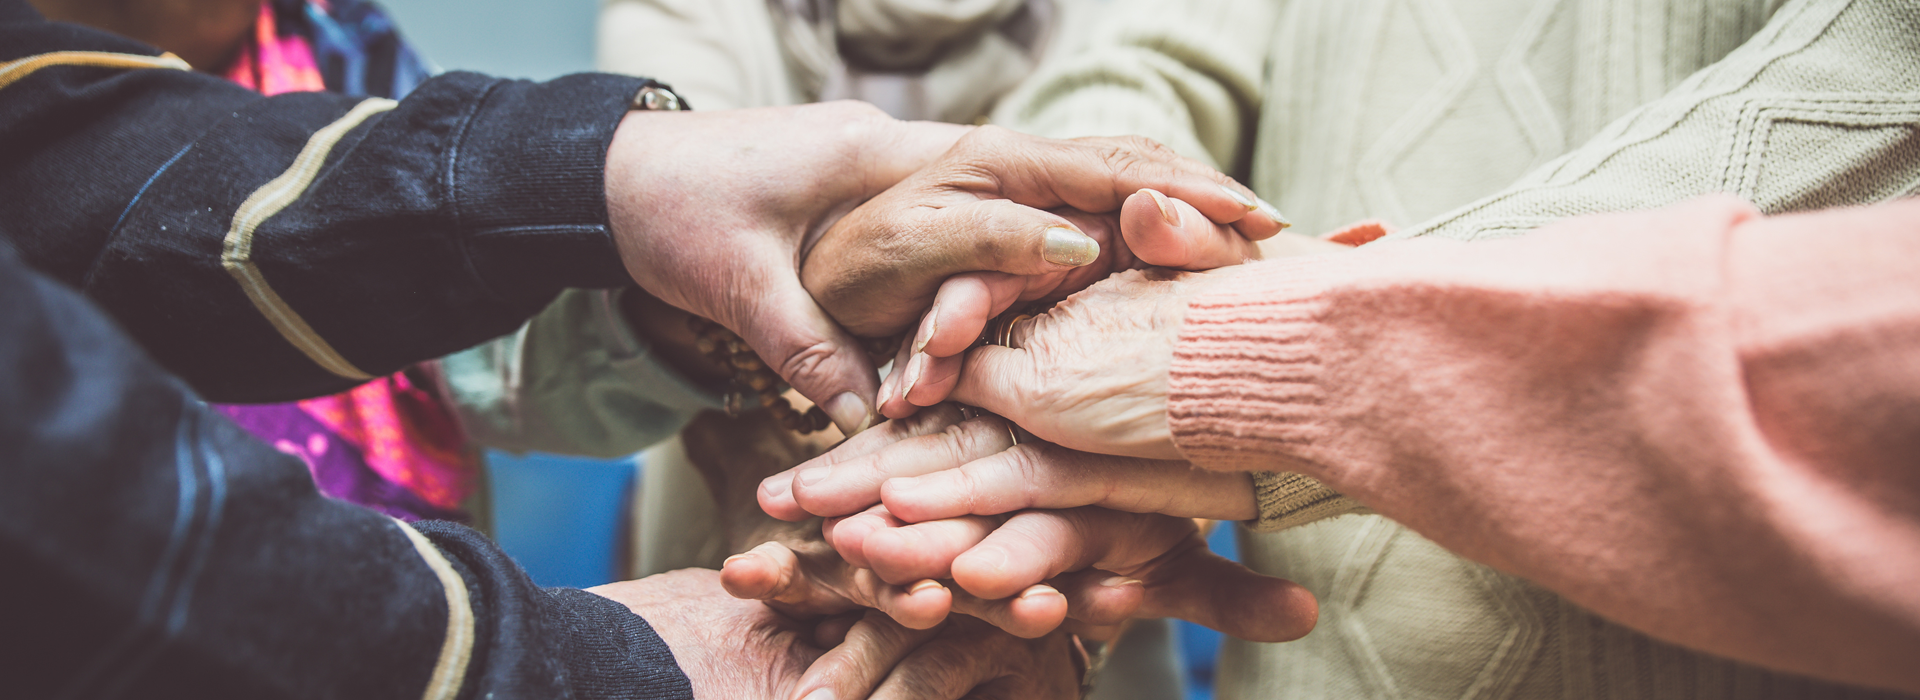 Group of senior citizens' hands